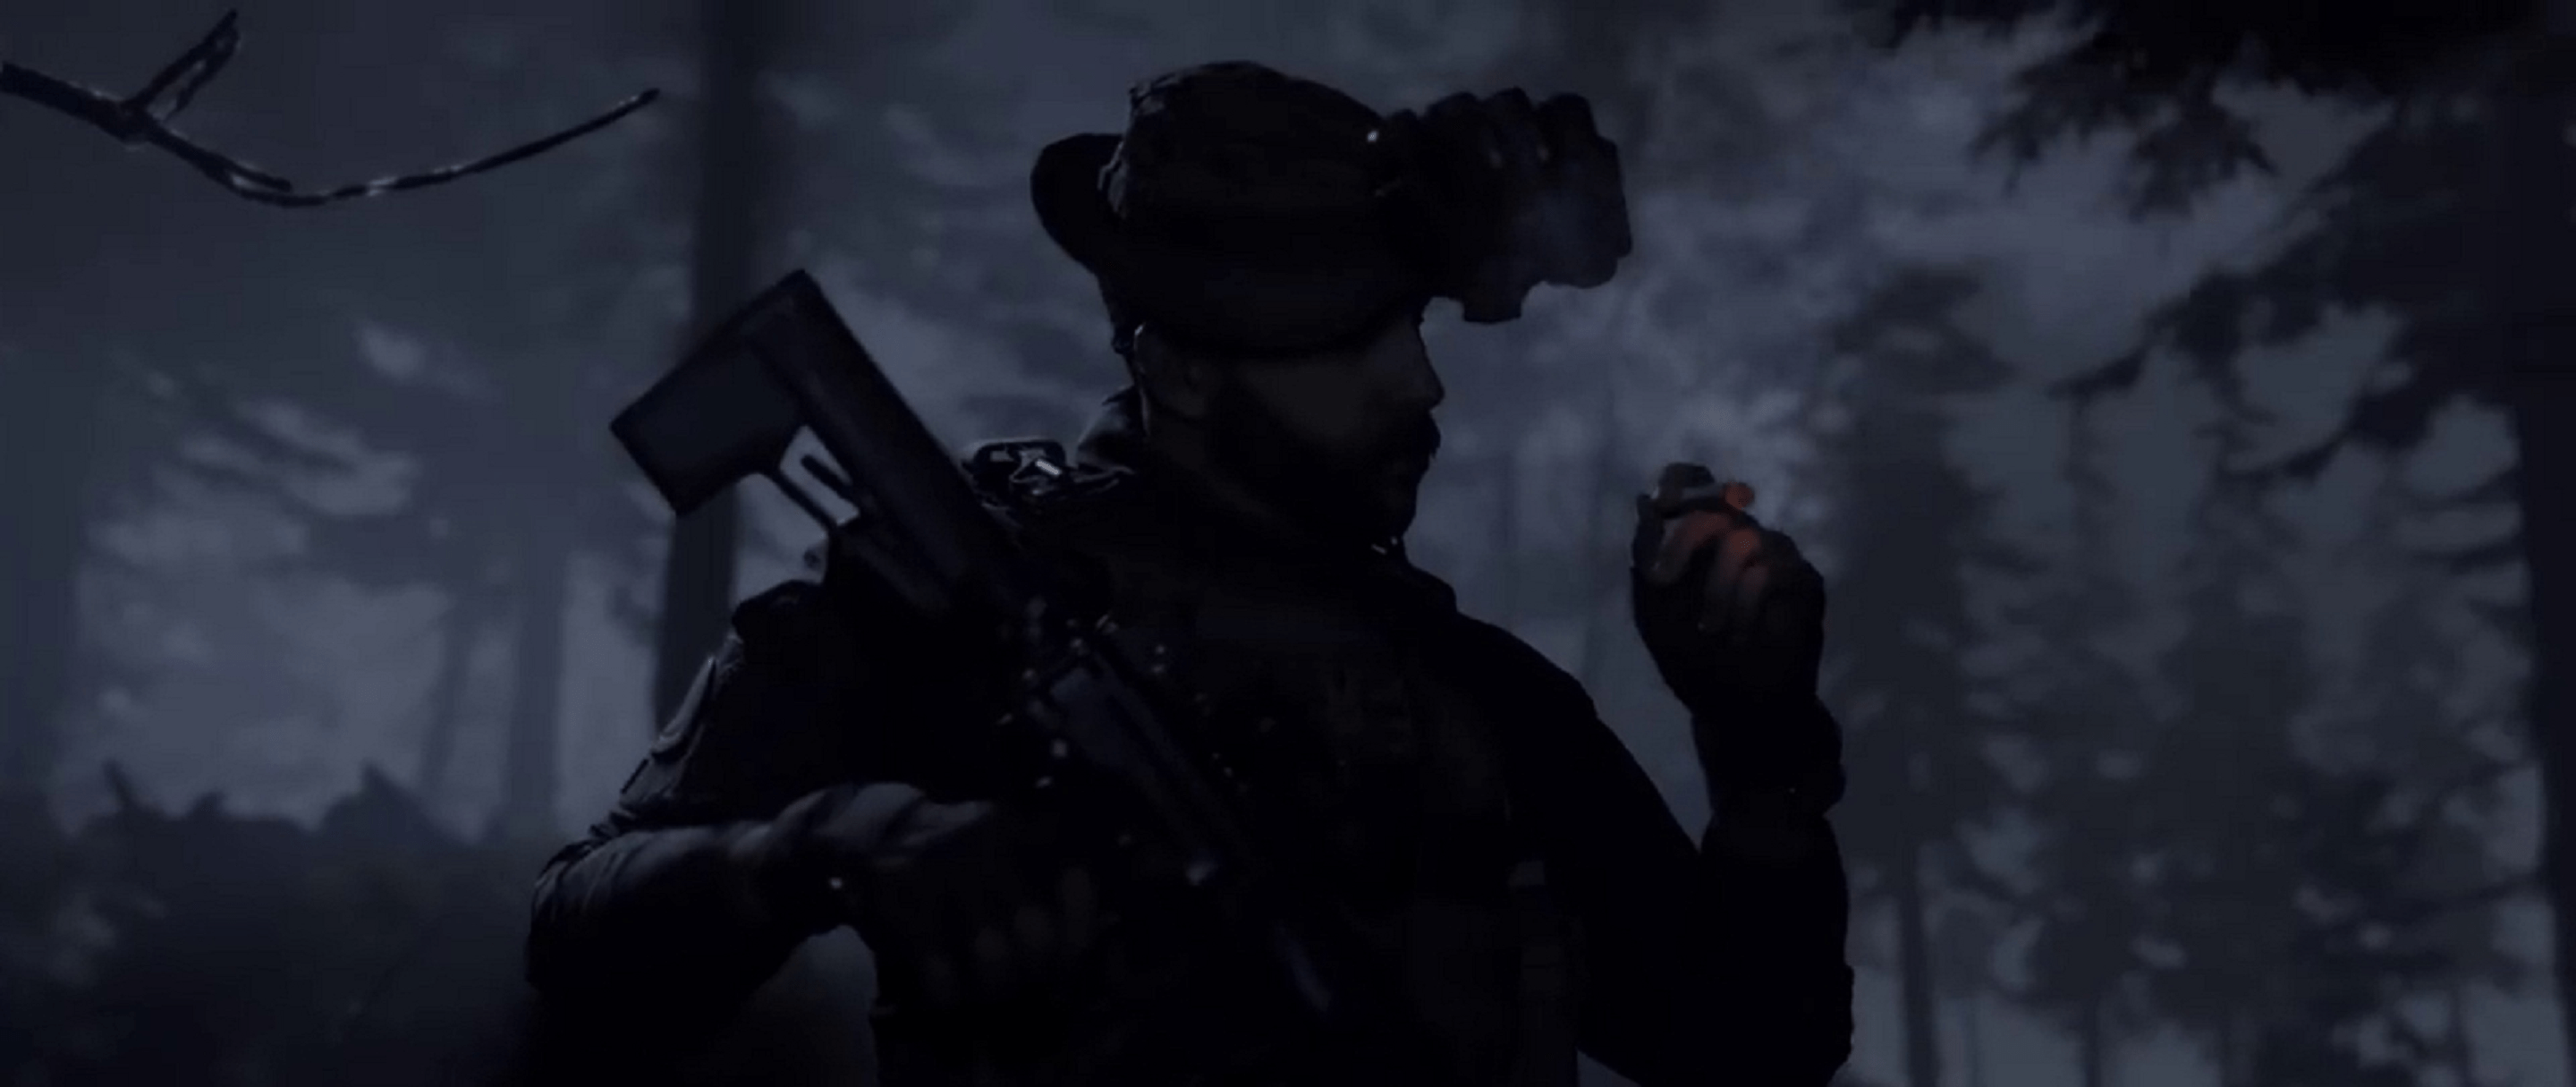 Call Of Duty: Modern Warfare Tops NPD Charts Again For Three Months Consistently, With Bonus Top 2010s Shown